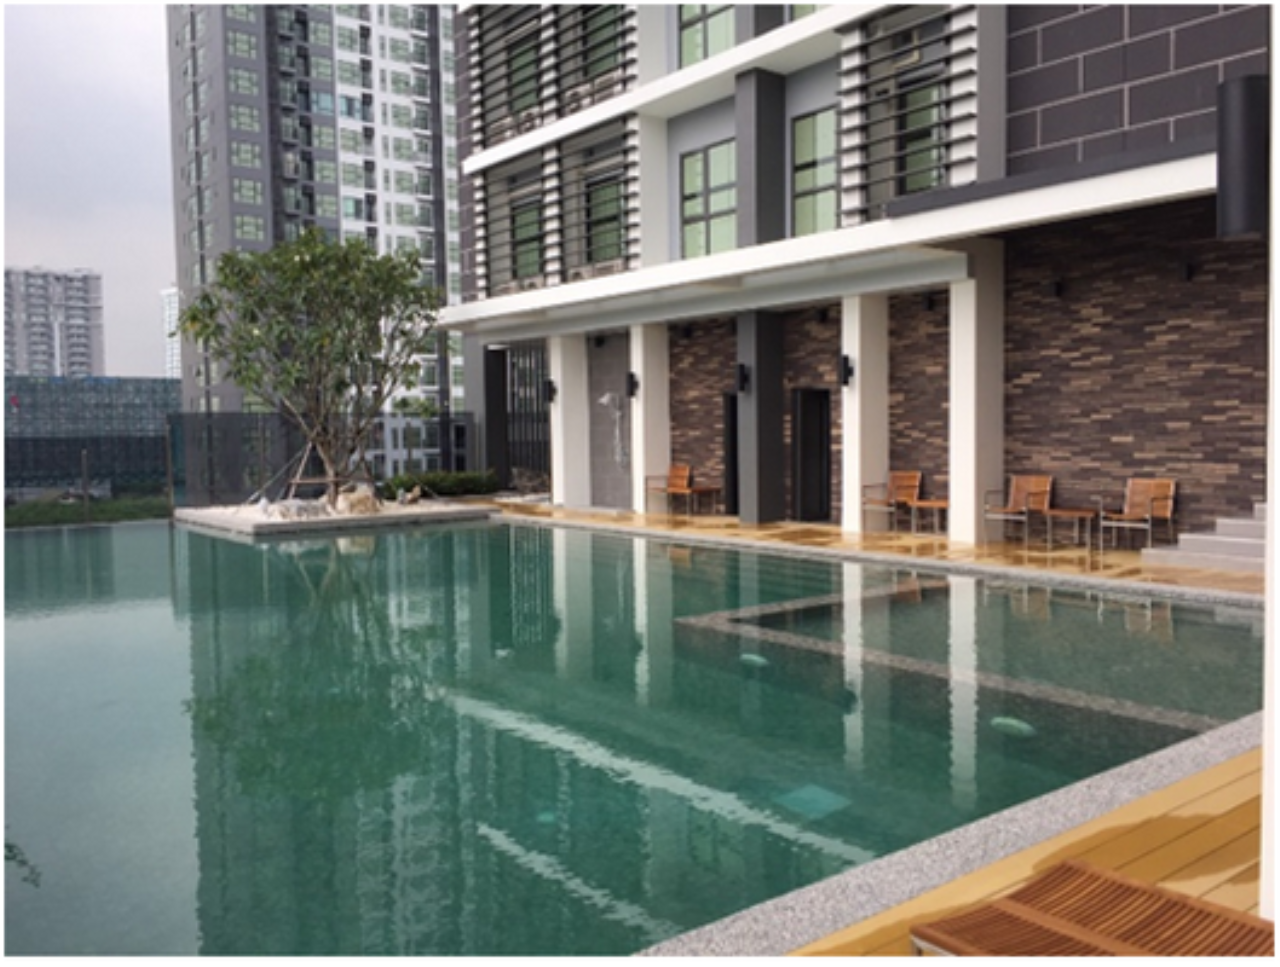 RE/MAX CondoDee Agency's Under-Market Price Condo in Rhythm Asoke 2 8